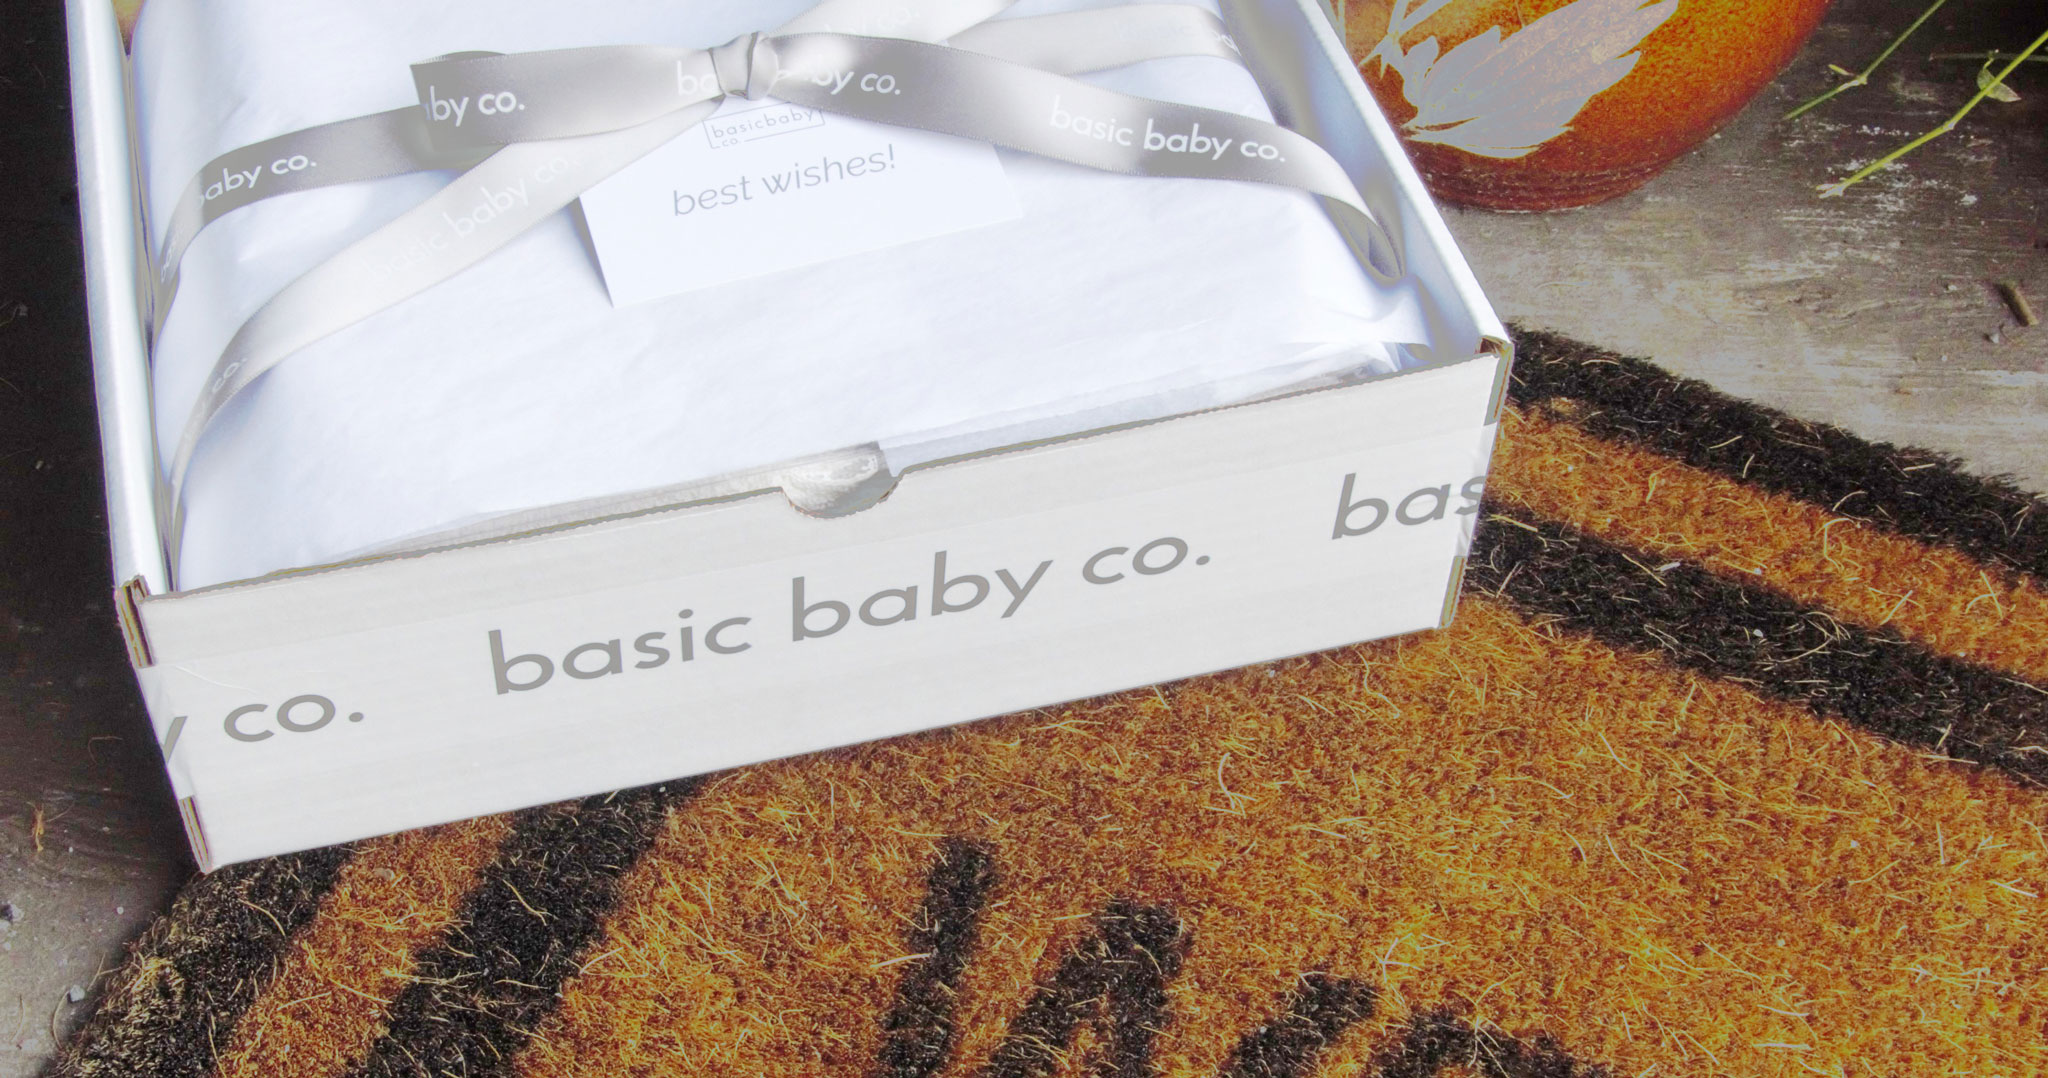 a unique collection of gifts for babies, fur babies, and new moms